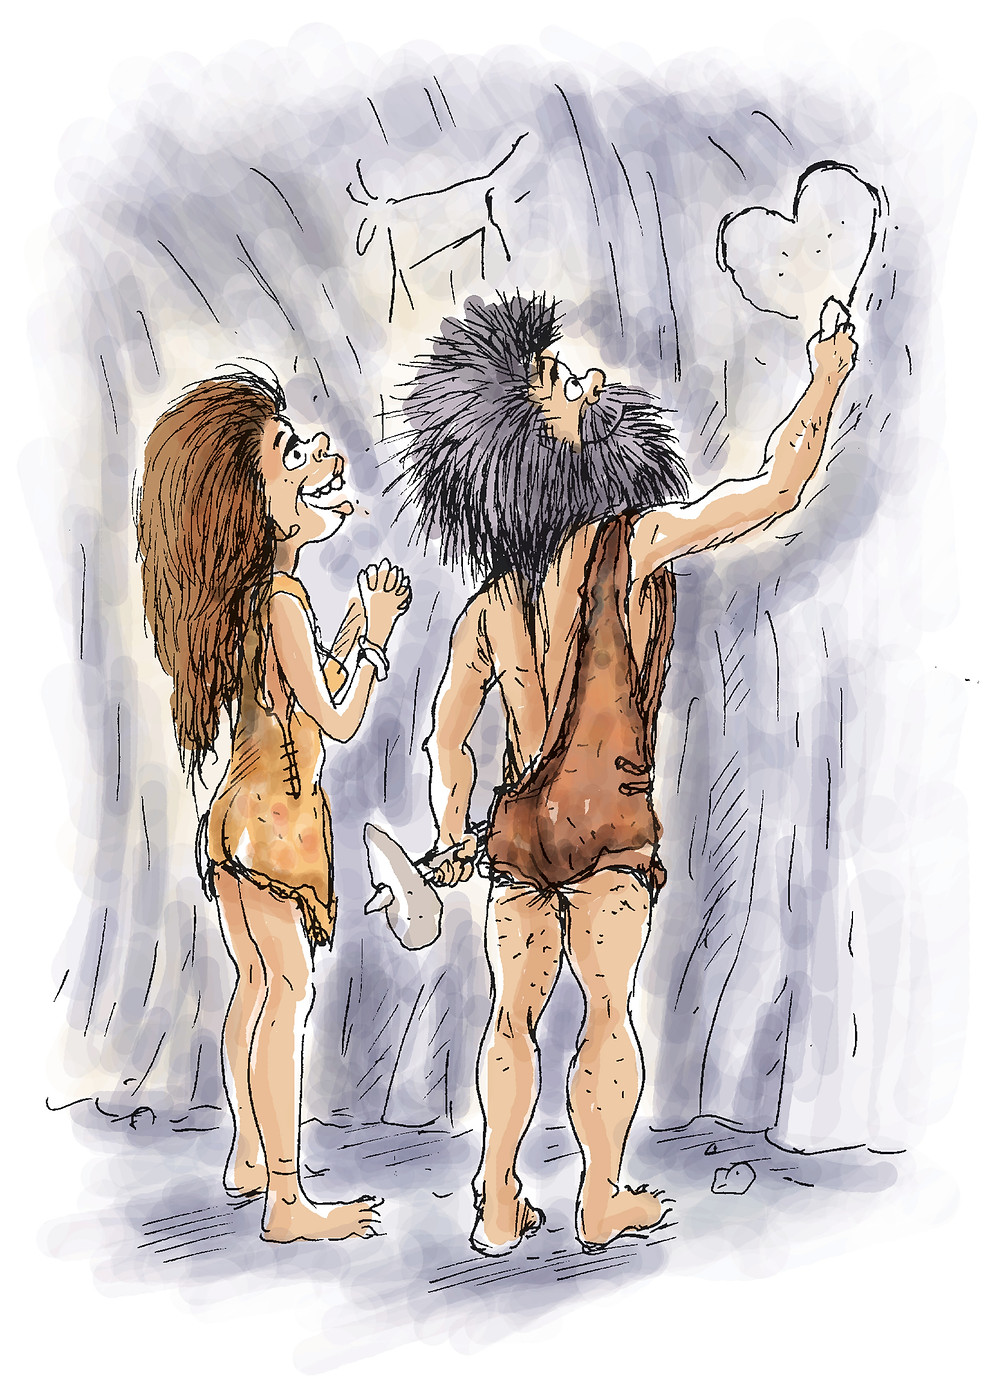 Cave Man and Woman drawing love heart on a cave wall.